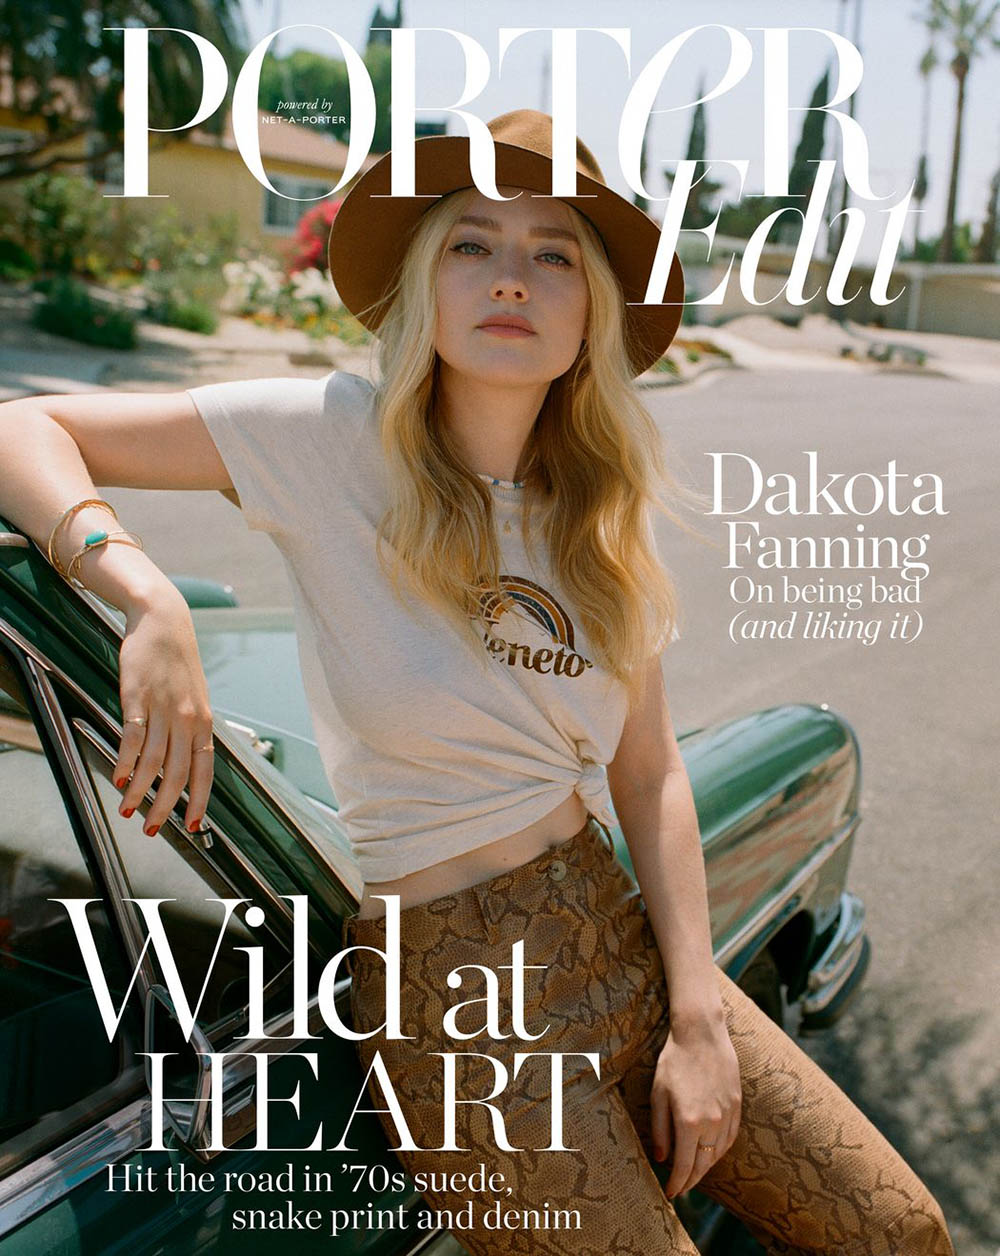 Dakota Fanning covers Porter Edit July 19th, 2019 by Matthew Sprout